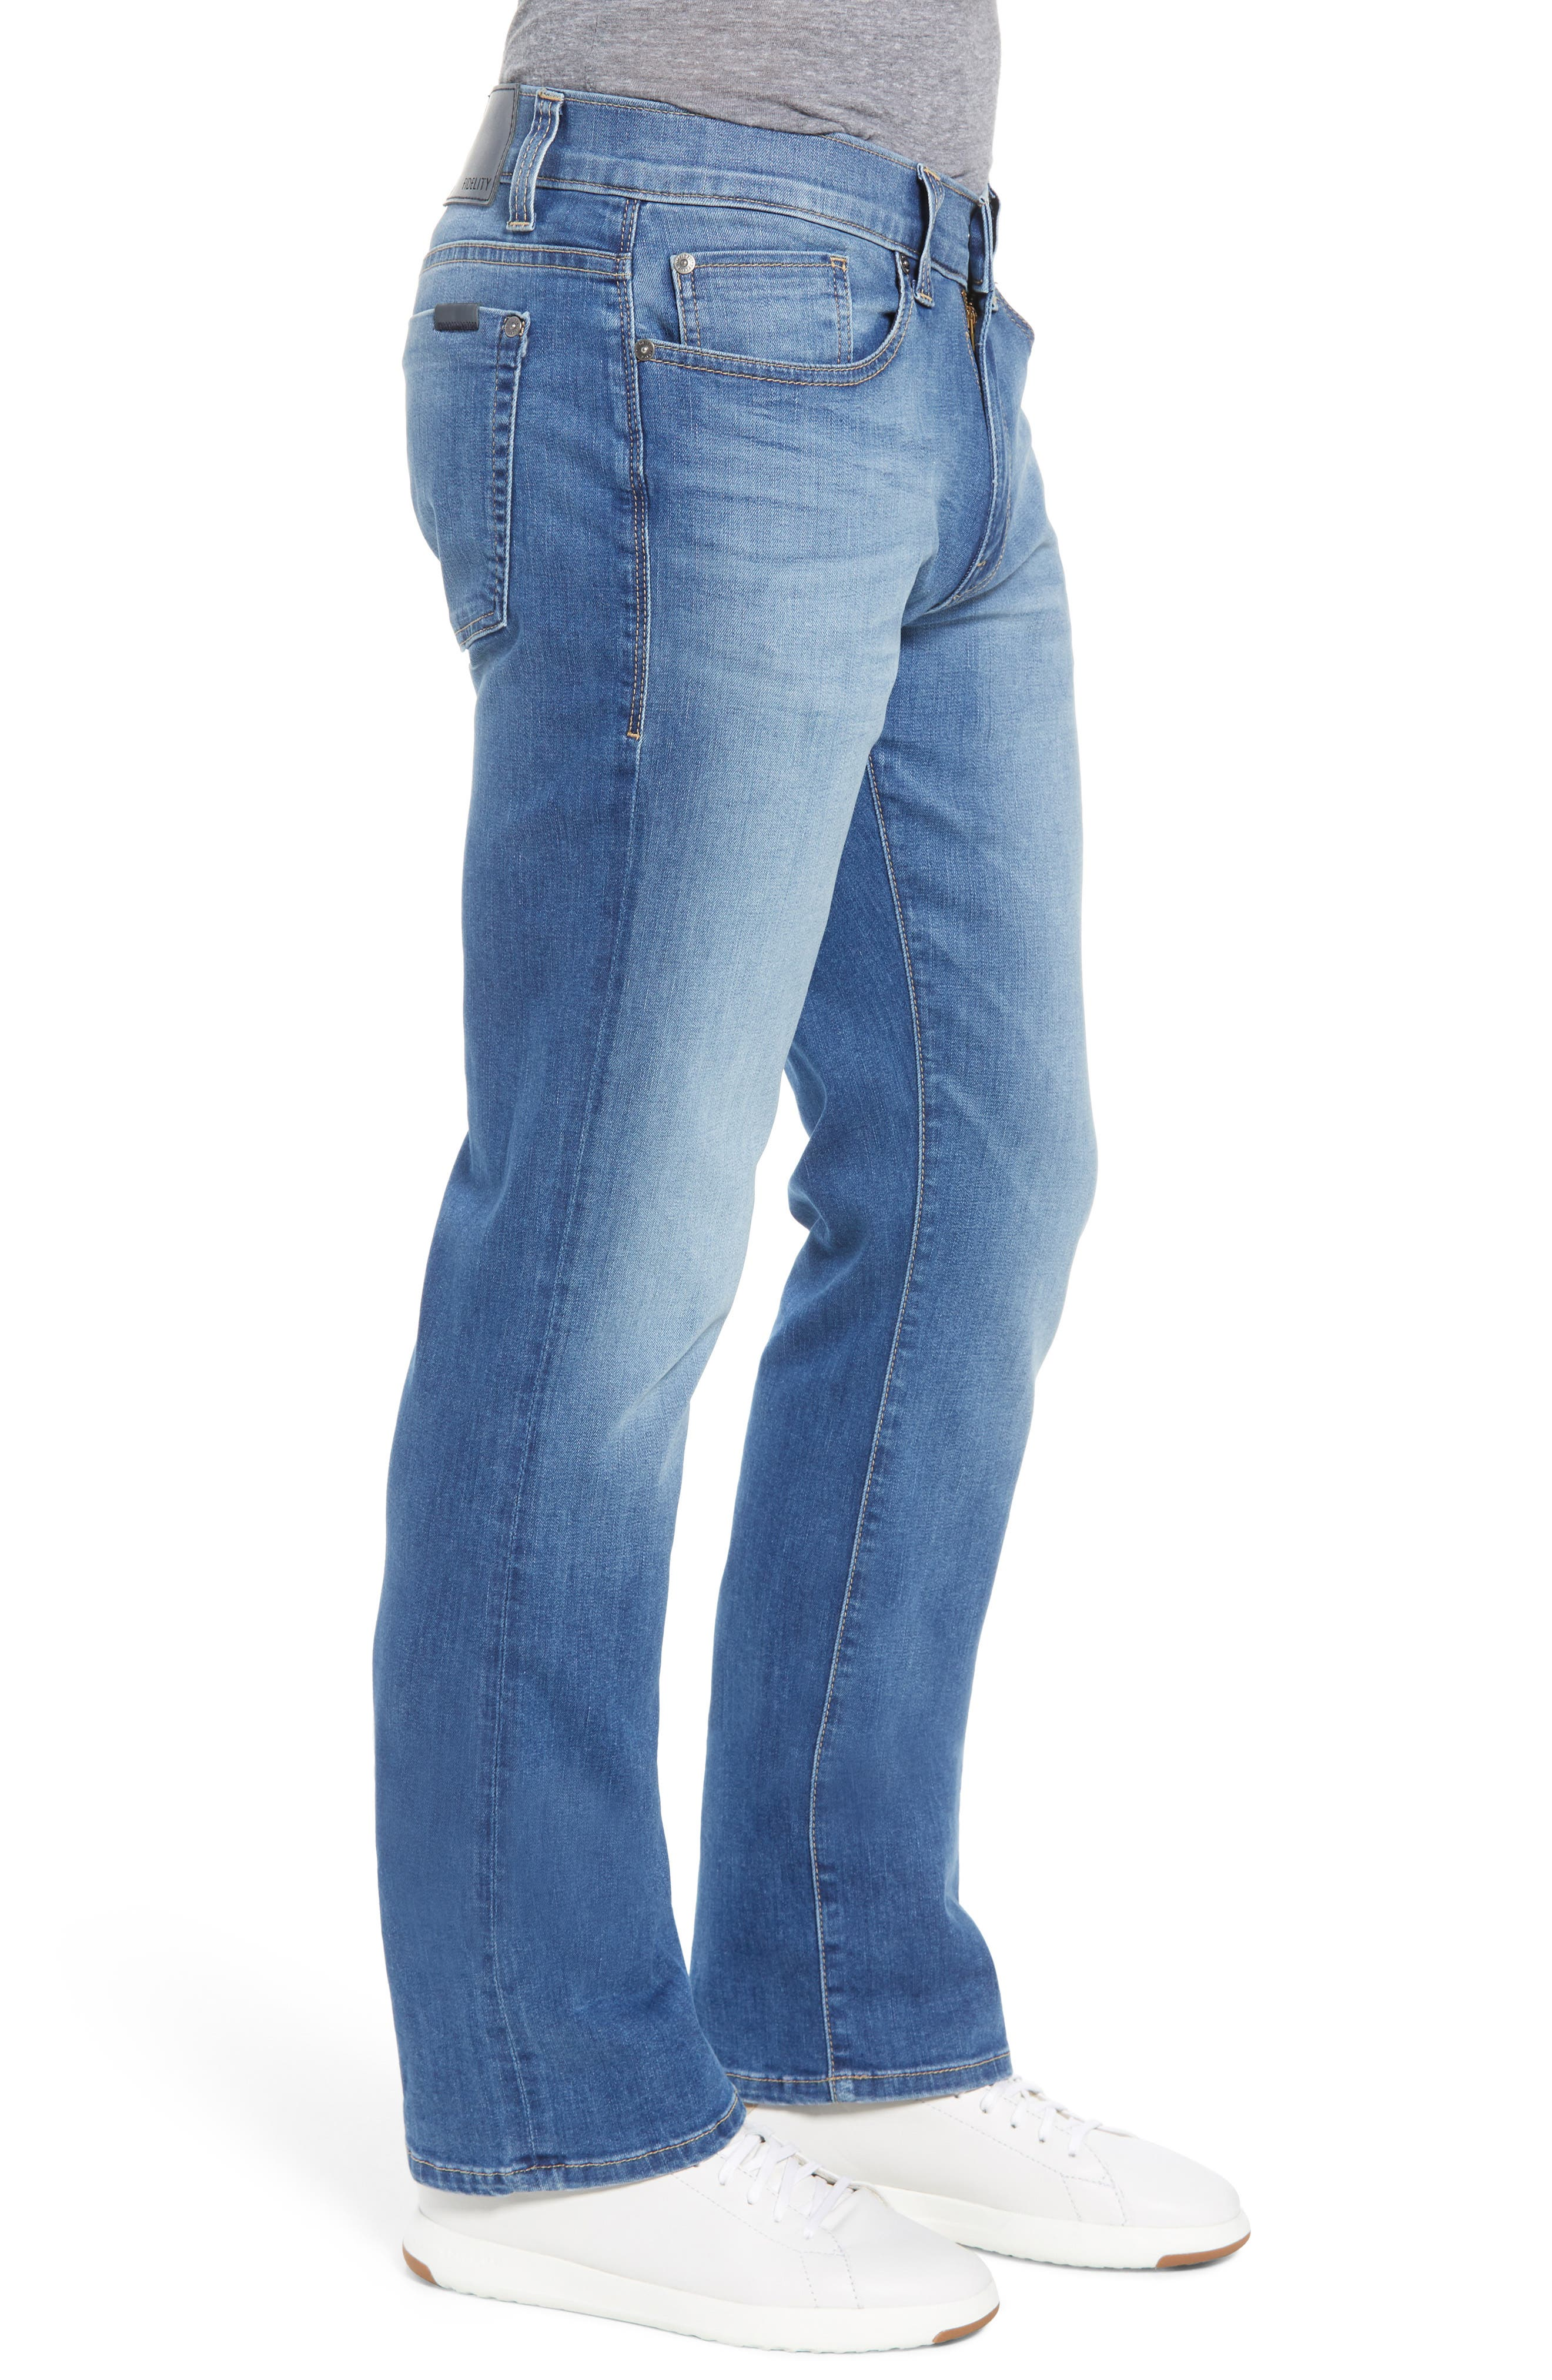 50-11 Relaxed Fit Jeans,                             Alternate thumbnail 3, color,                             Elysium